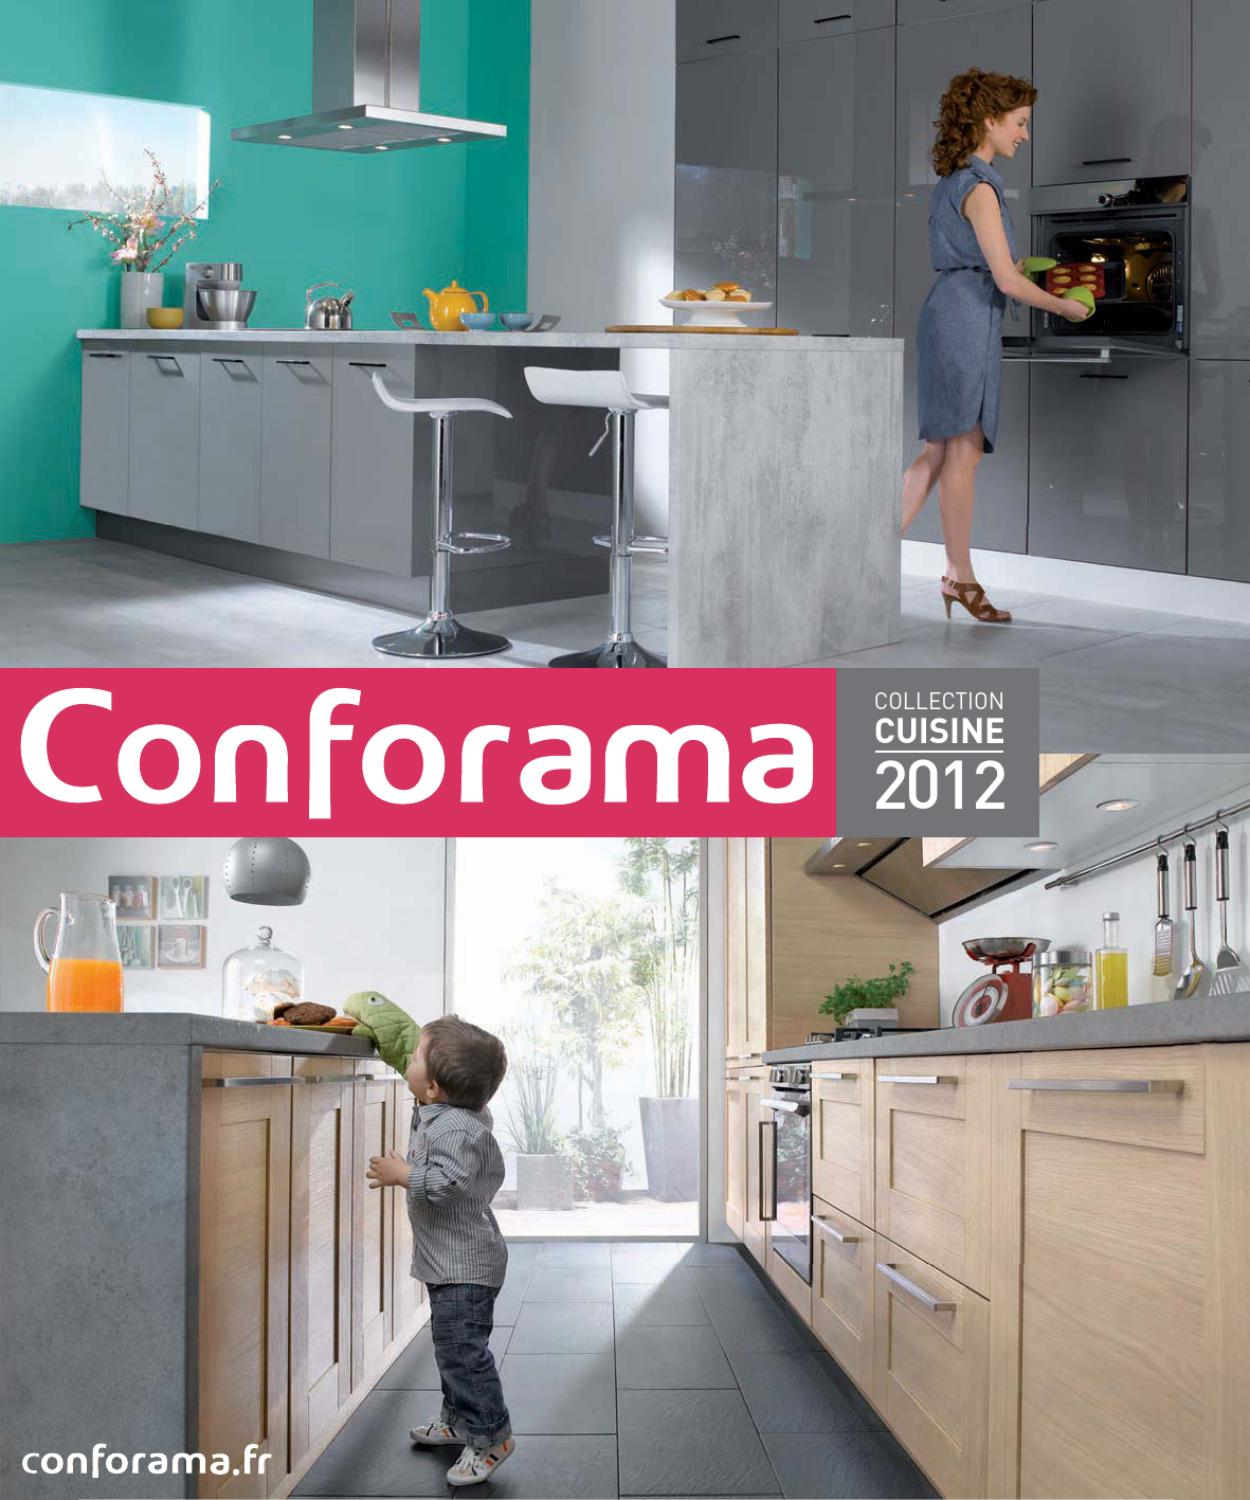 Conforama_fr-Cuсsine14 by Proomo France - issuu